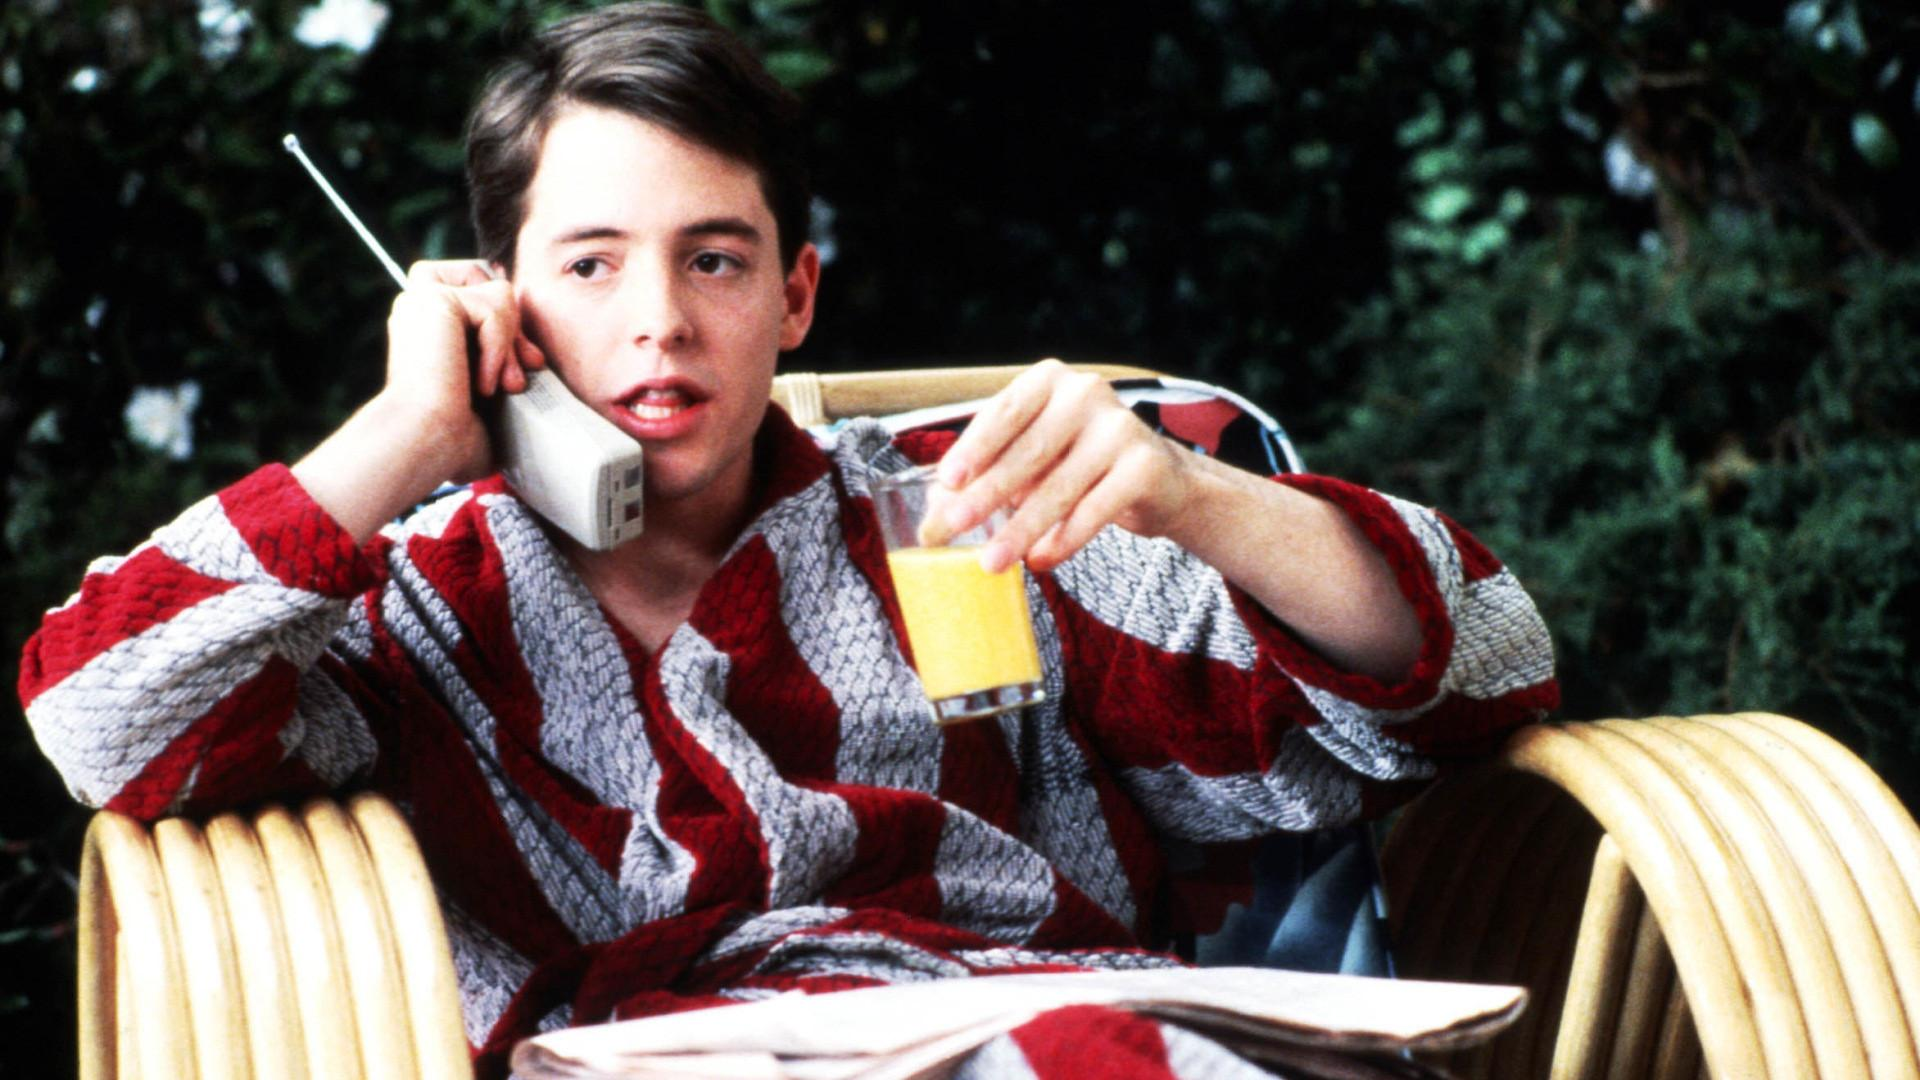 Revisiting: Ferris Bueller's Day Off